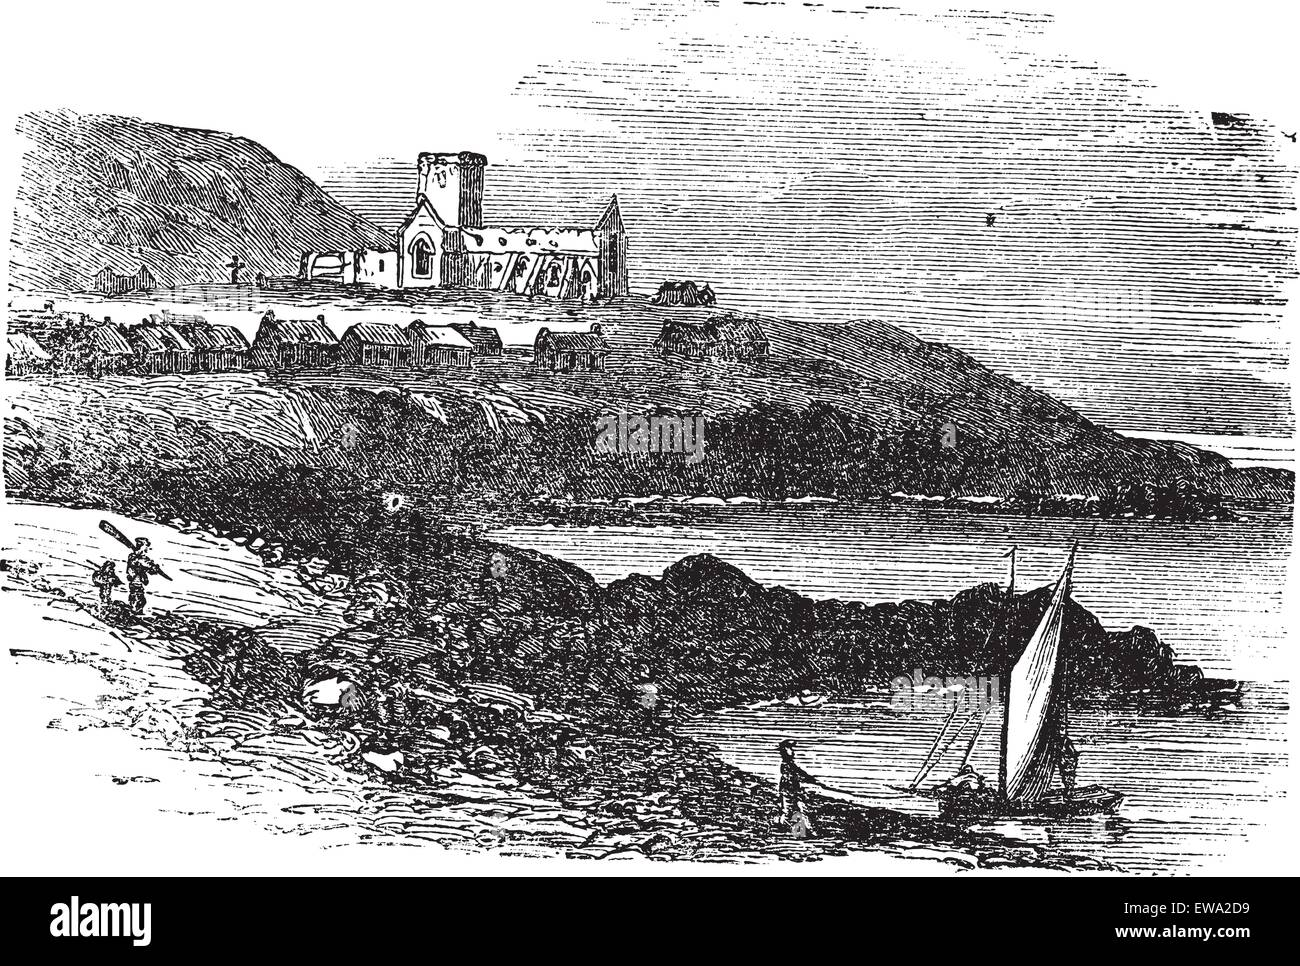 The ruins of St Mary's Abbey in Iona, Scotland, during the 1890s, vintage engraving. Old engraved illustration - Stock Vector